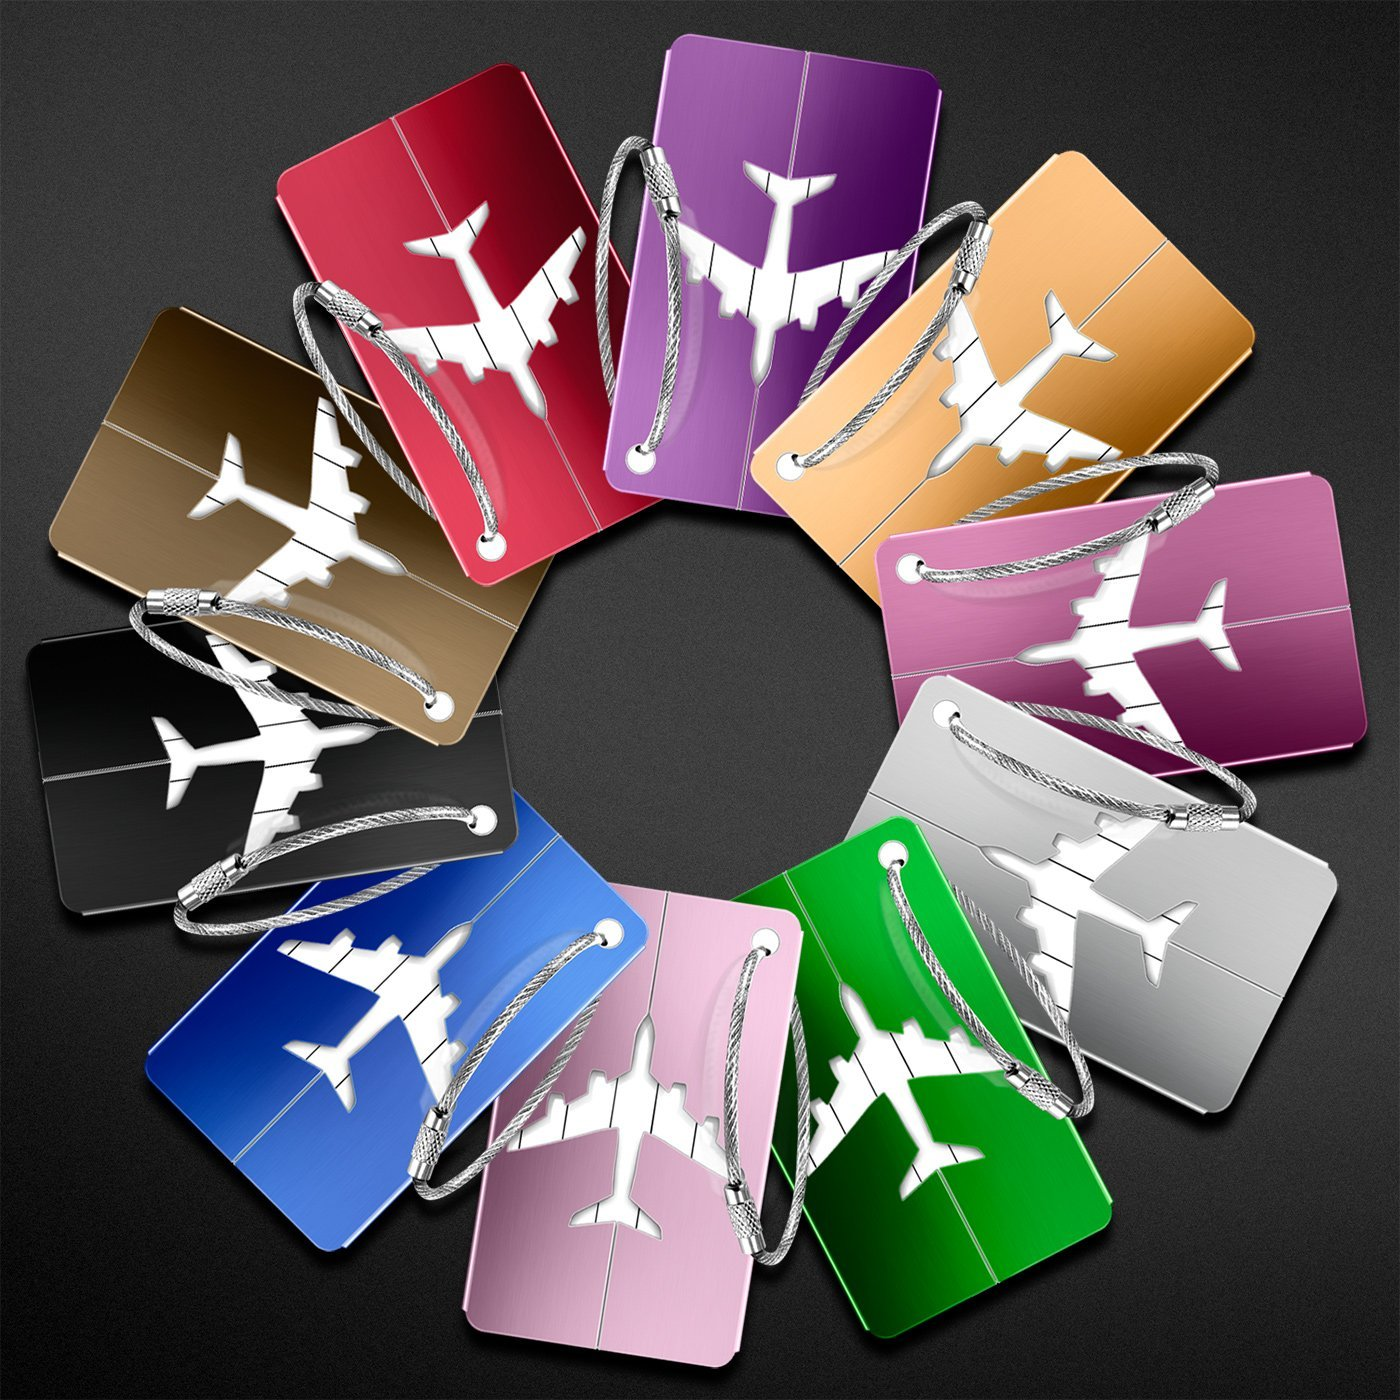 Luggage Tags 10pcs,Baggage Tags Tag Labels with Business Card Holder(10 colors) by Yosemy (Image #8)